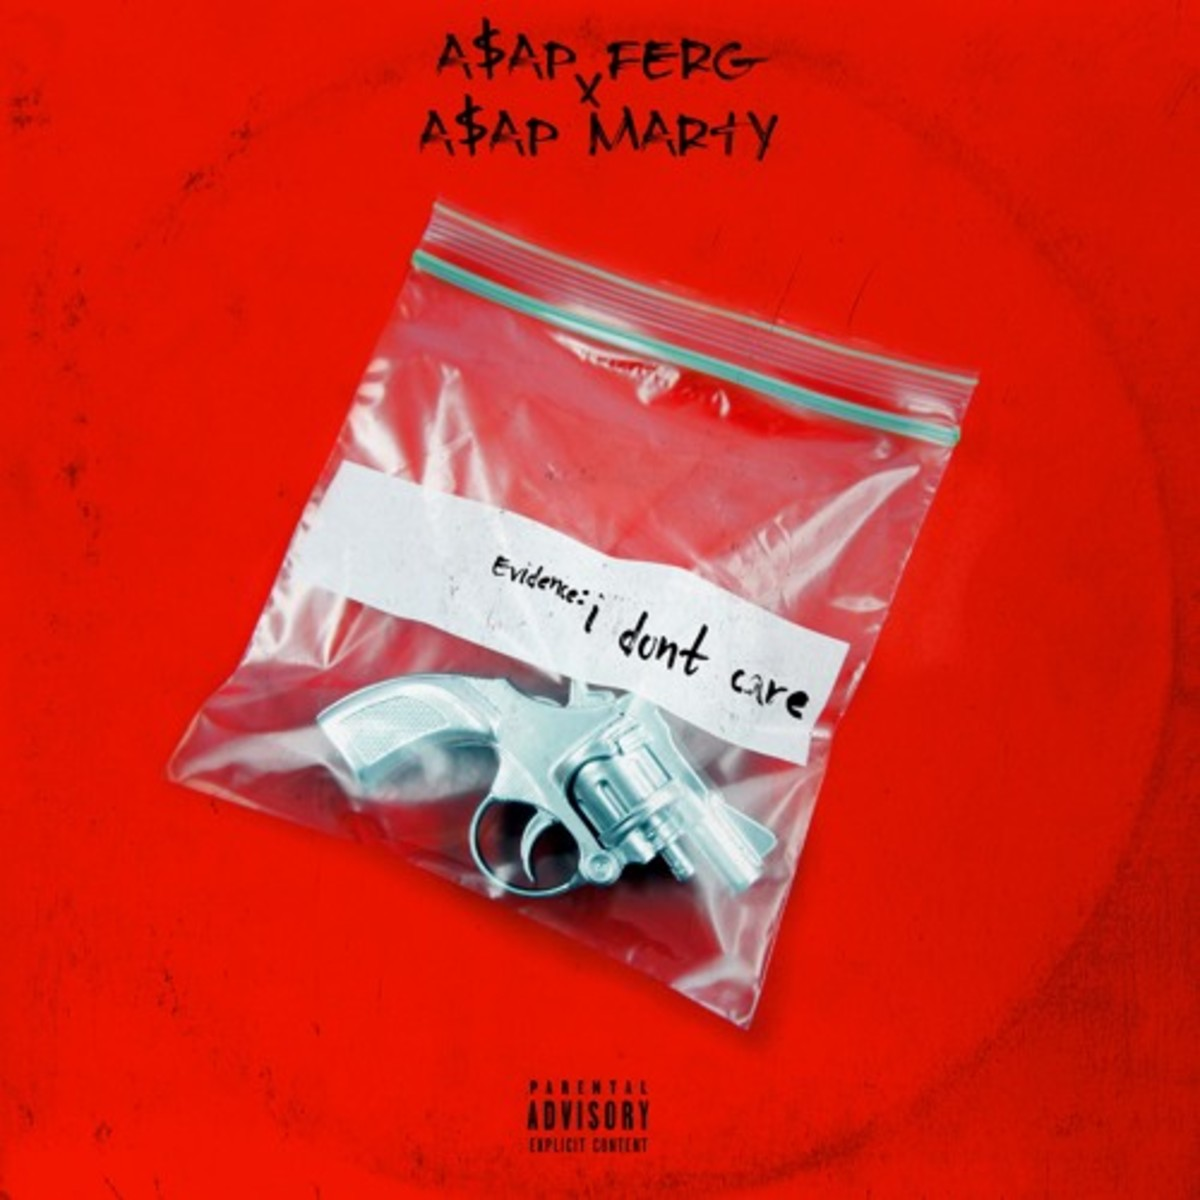 asap-ferg-asap-marty-i-dont-care.jpg